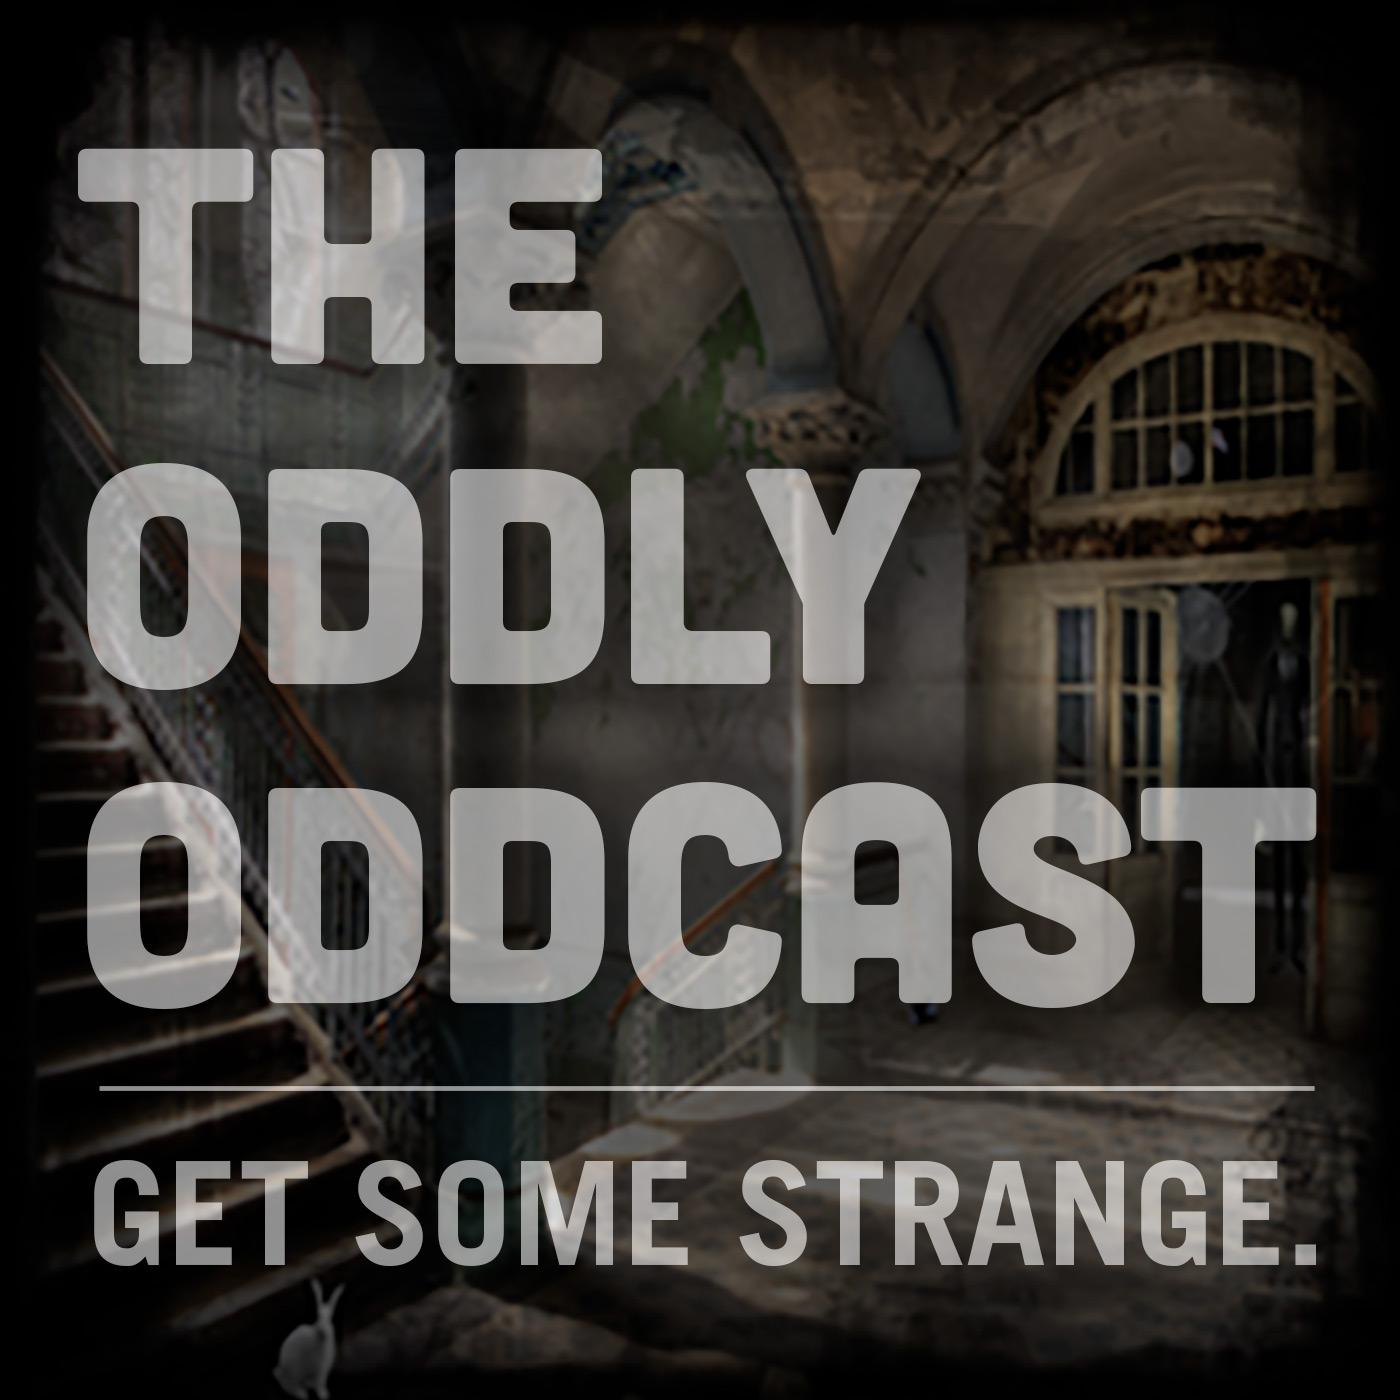 Oddly Oddcast Podcast - Oddly Oddcast | Listen Notes